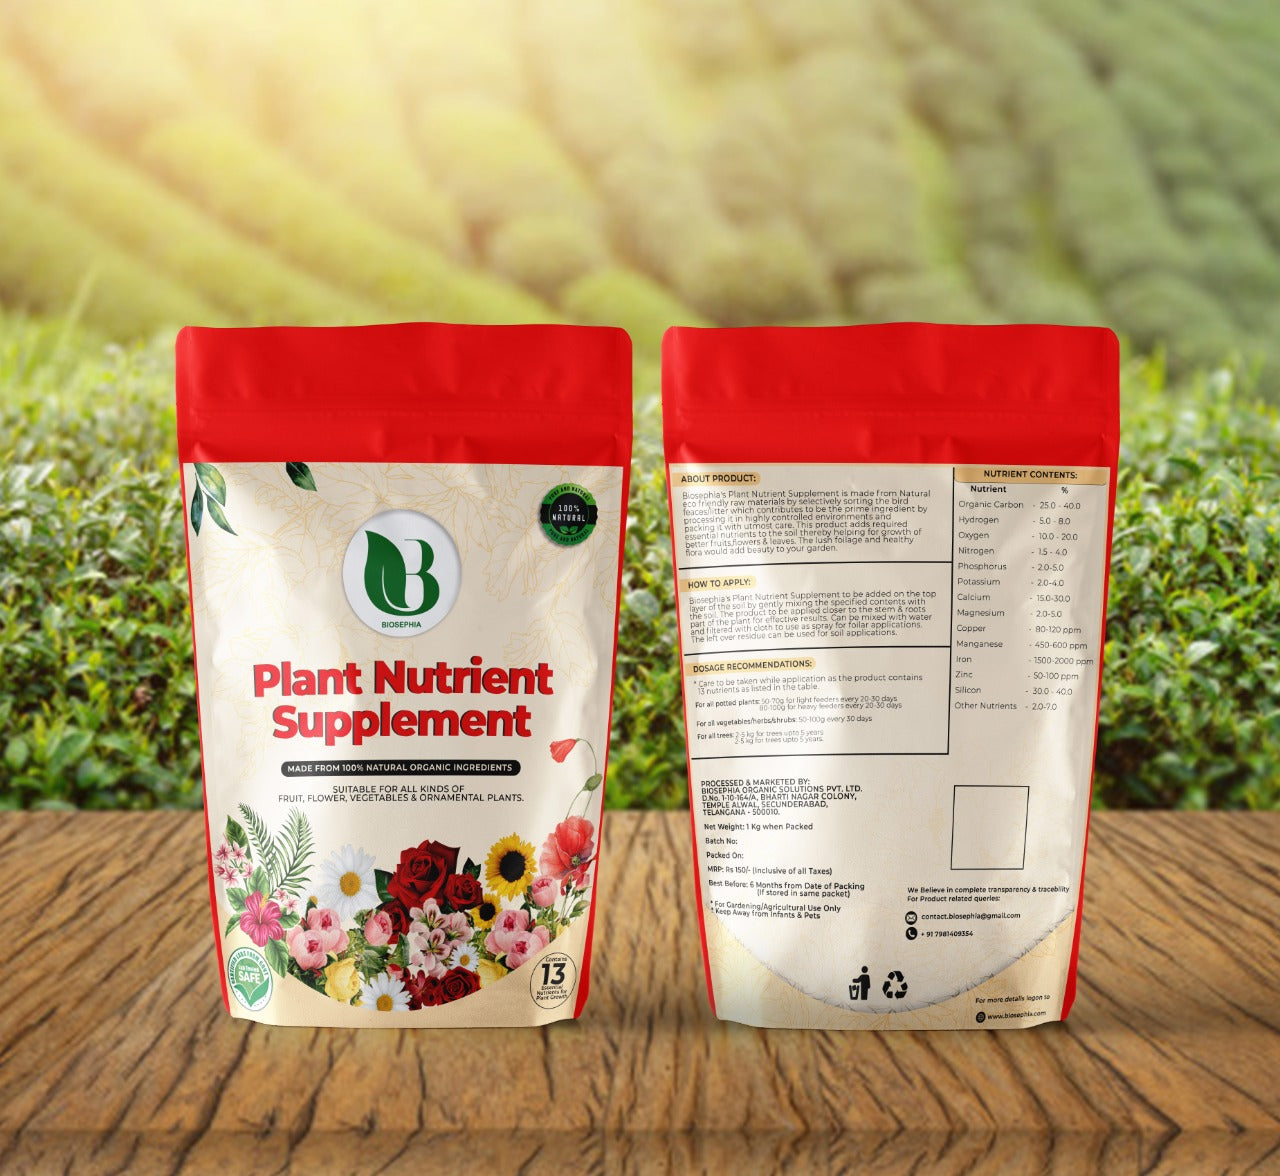 Biosephia Plant Nutrient Supplement (PNS)